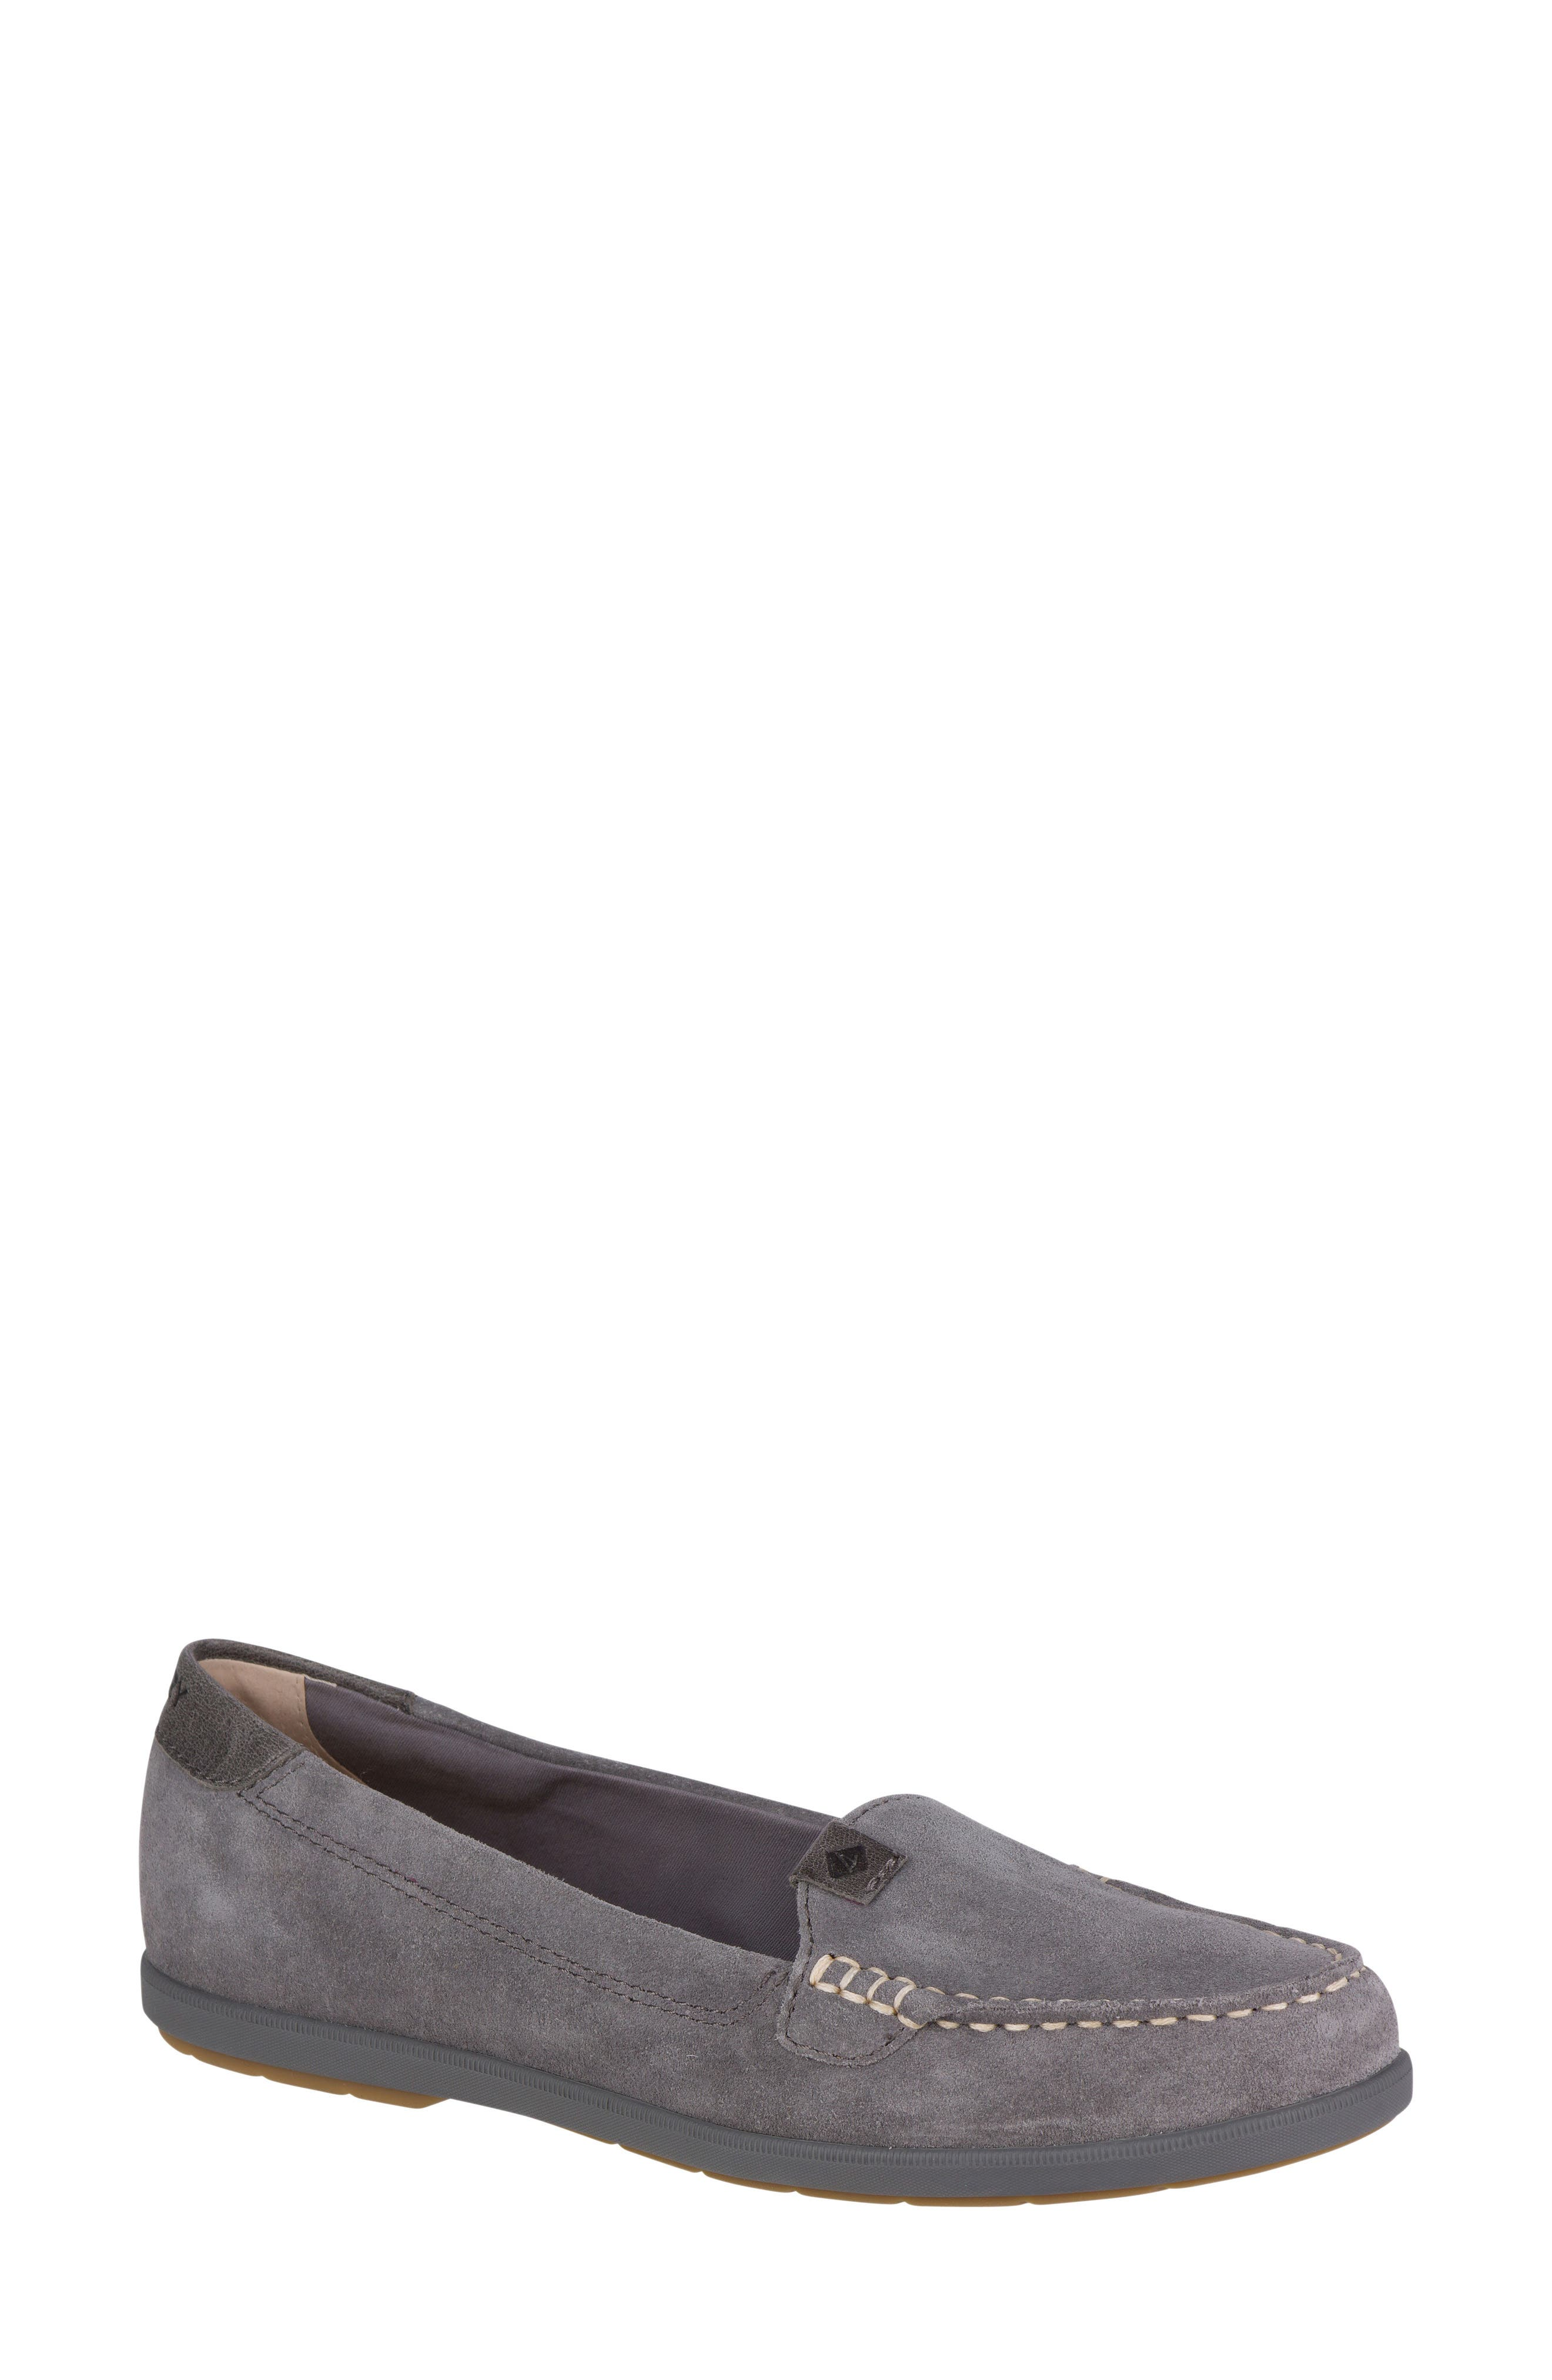 Coil Mia Loafer,                             Main thumbnail 3, color,